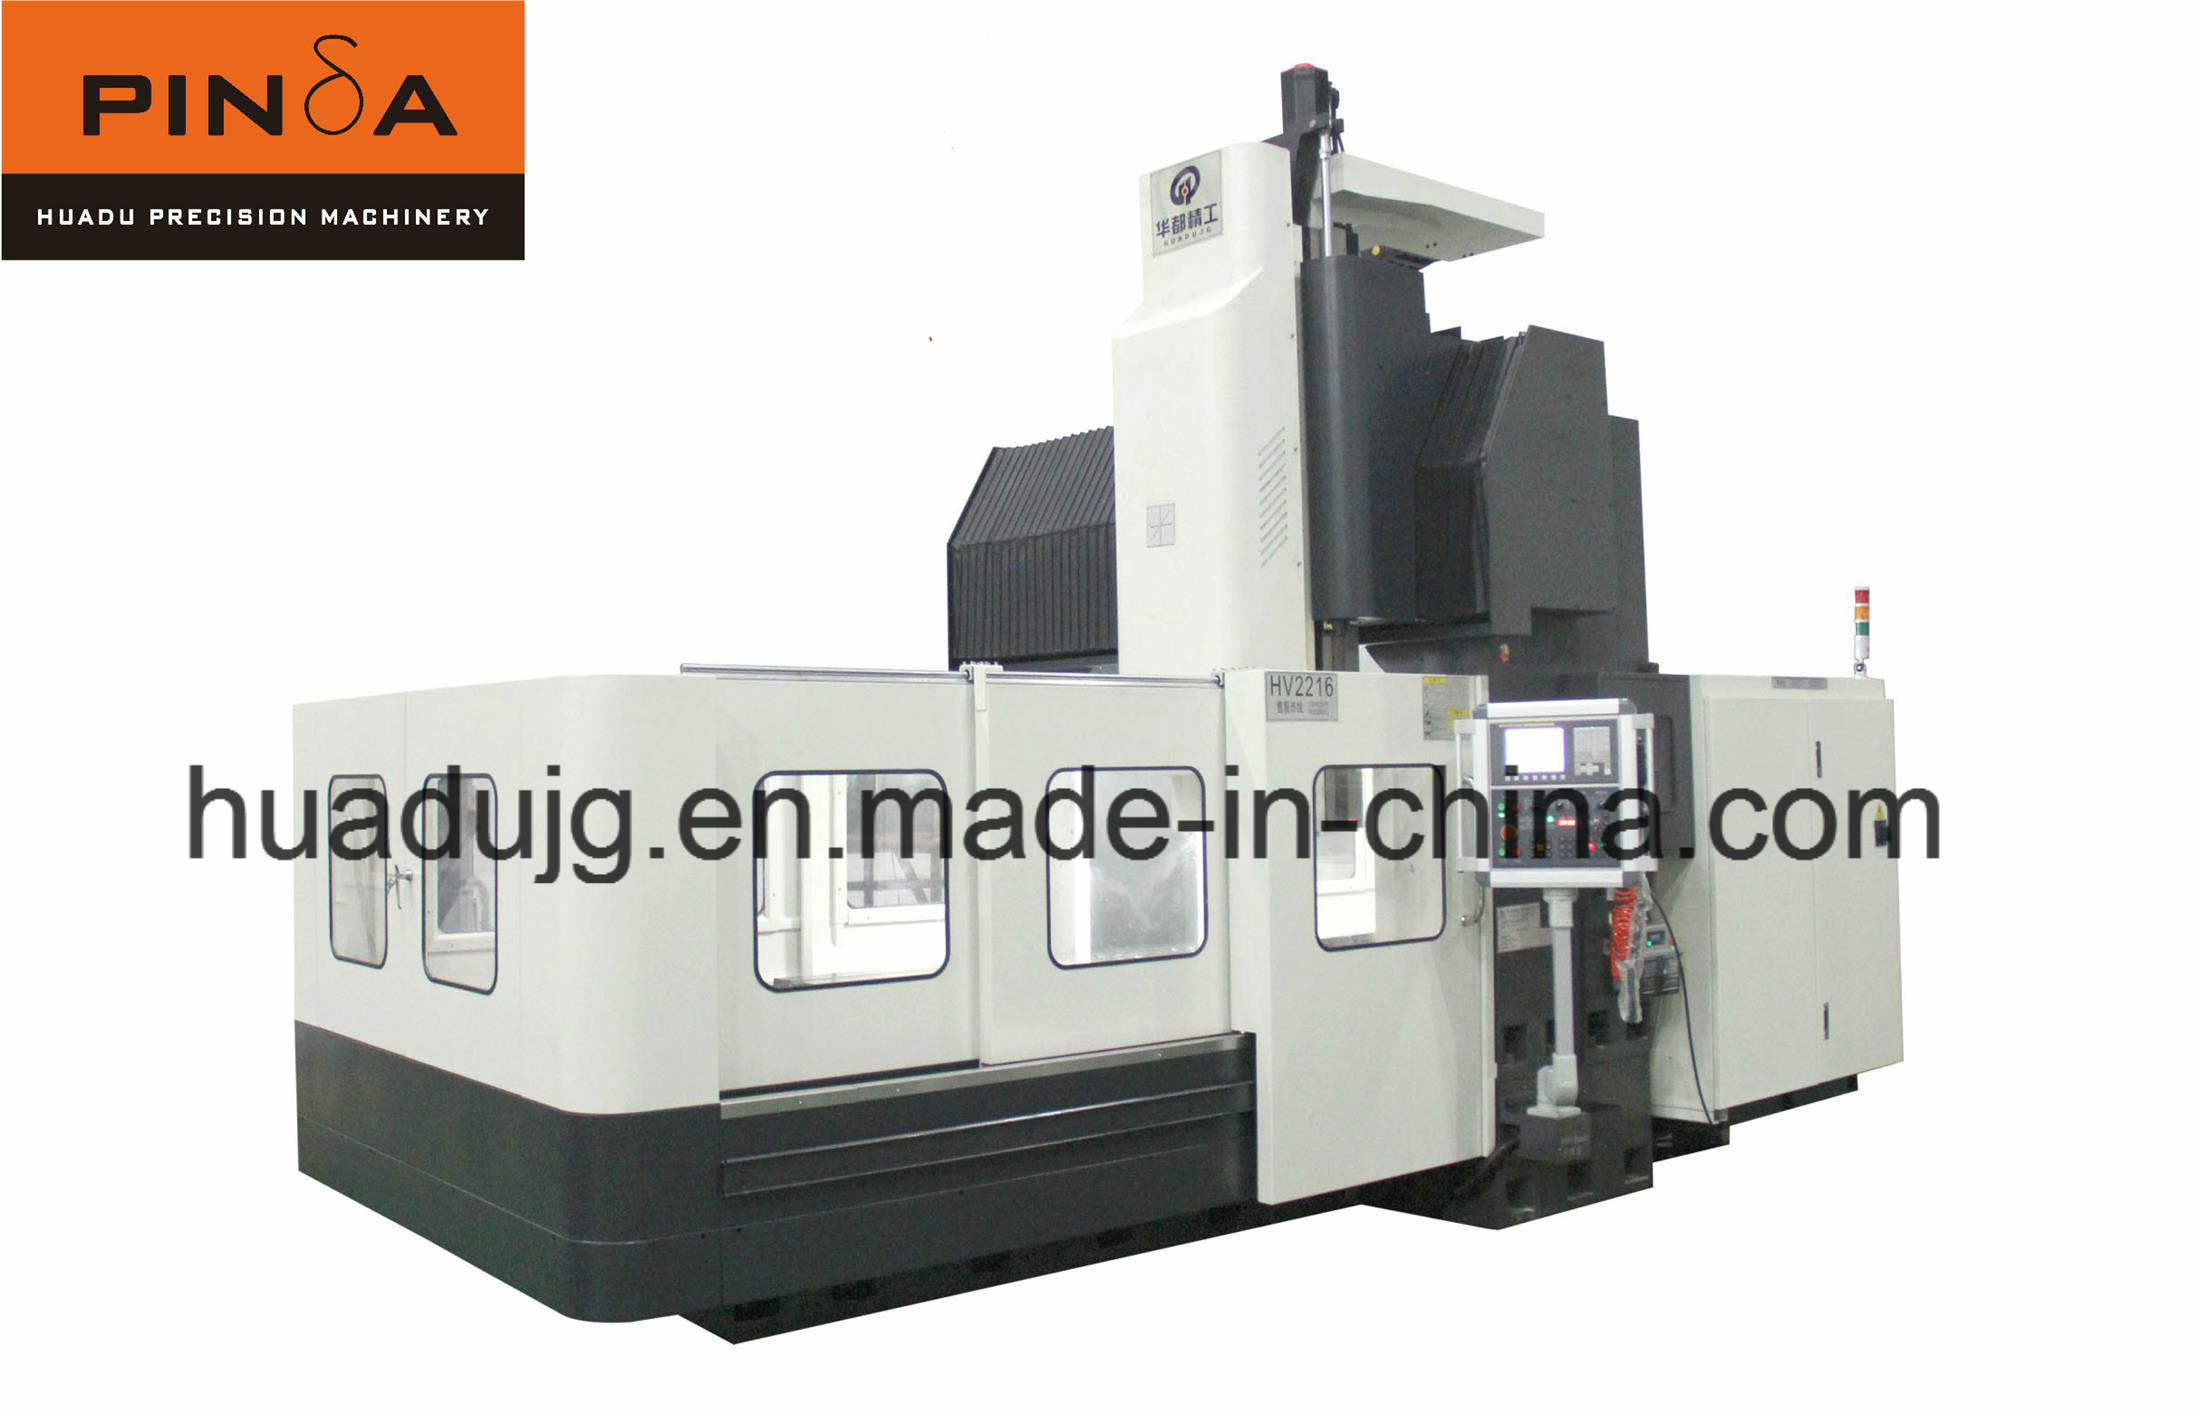 Integral Gantry Vertical CNC Machine for Metal Machining (HV1813)